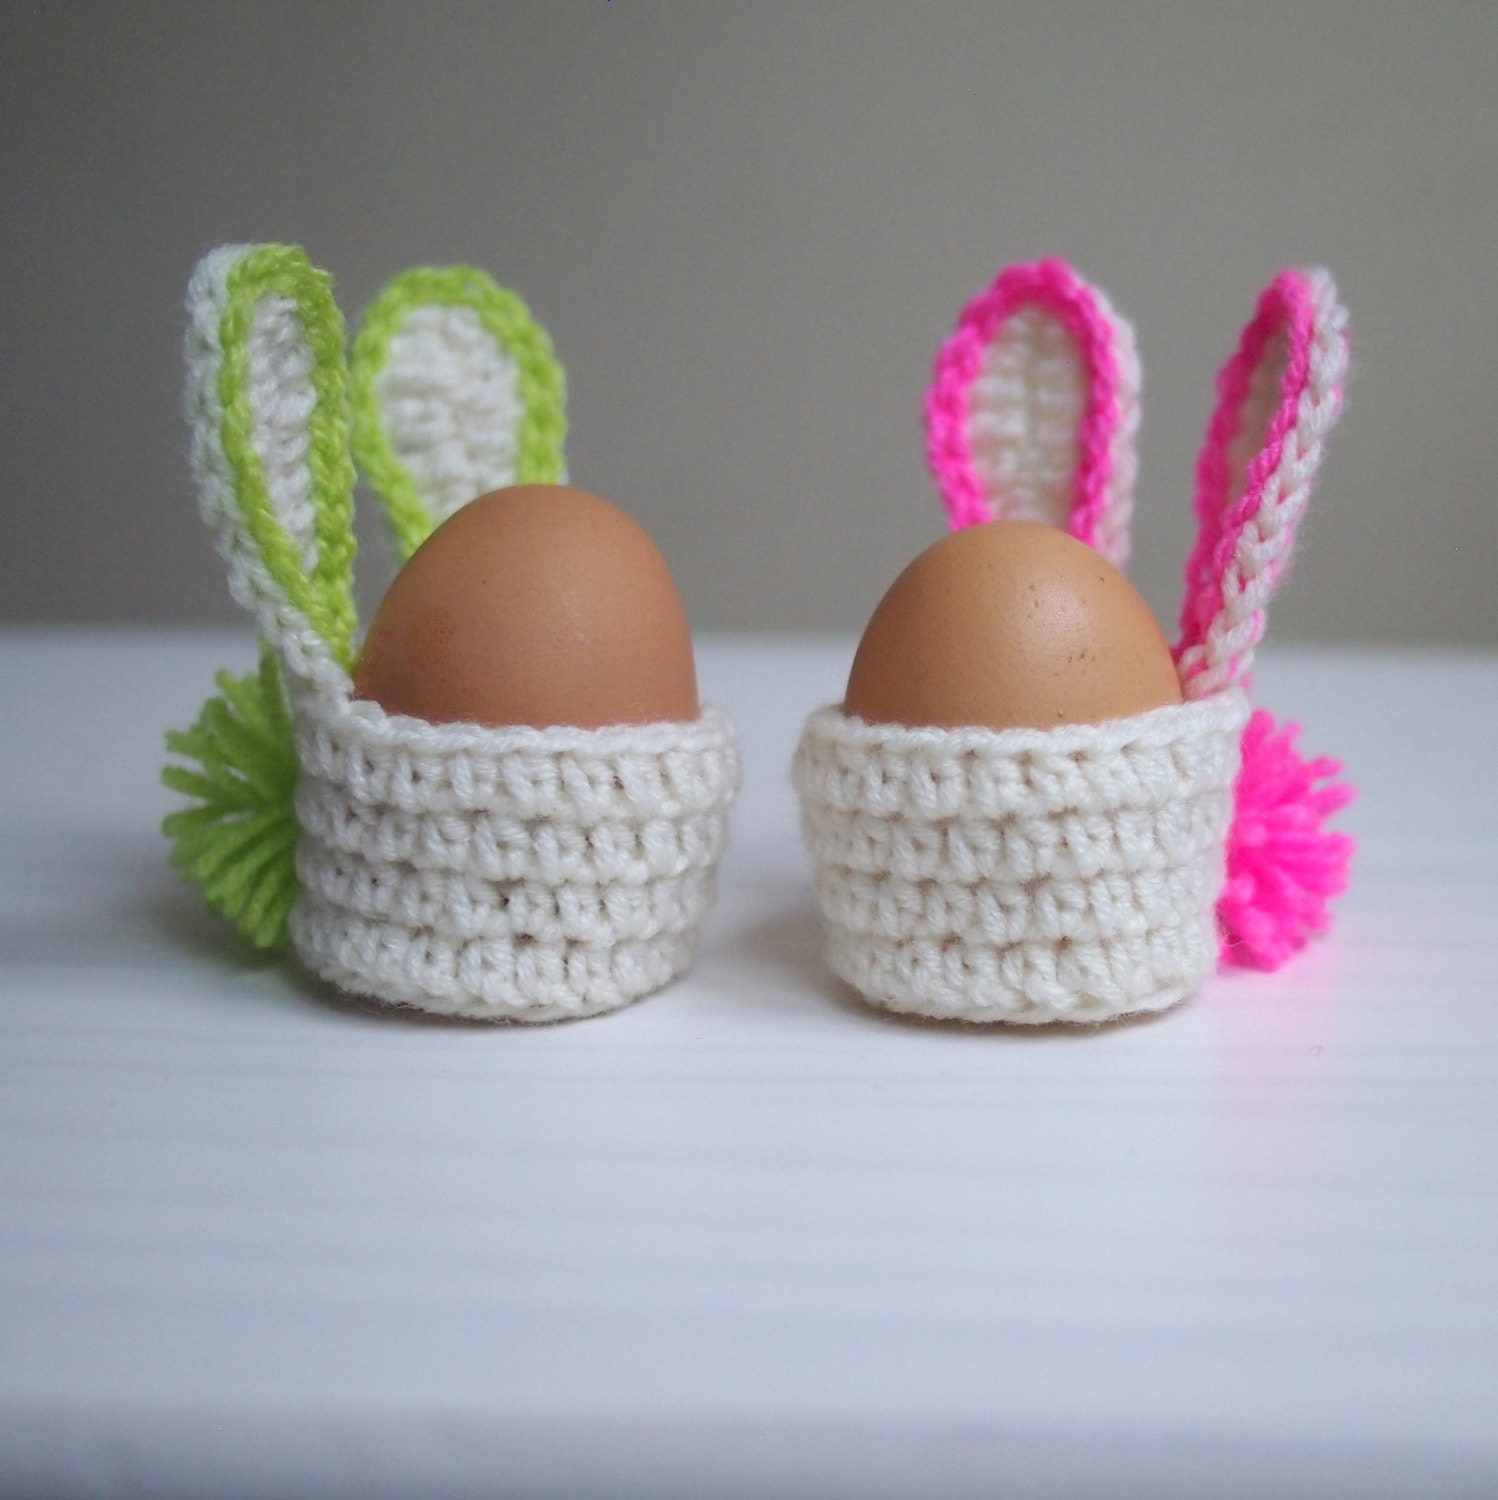 Diy easter decor gift ideas etsy crochet pattern easter bunny egg cozy basket kids home decor decoration negle Choice Image